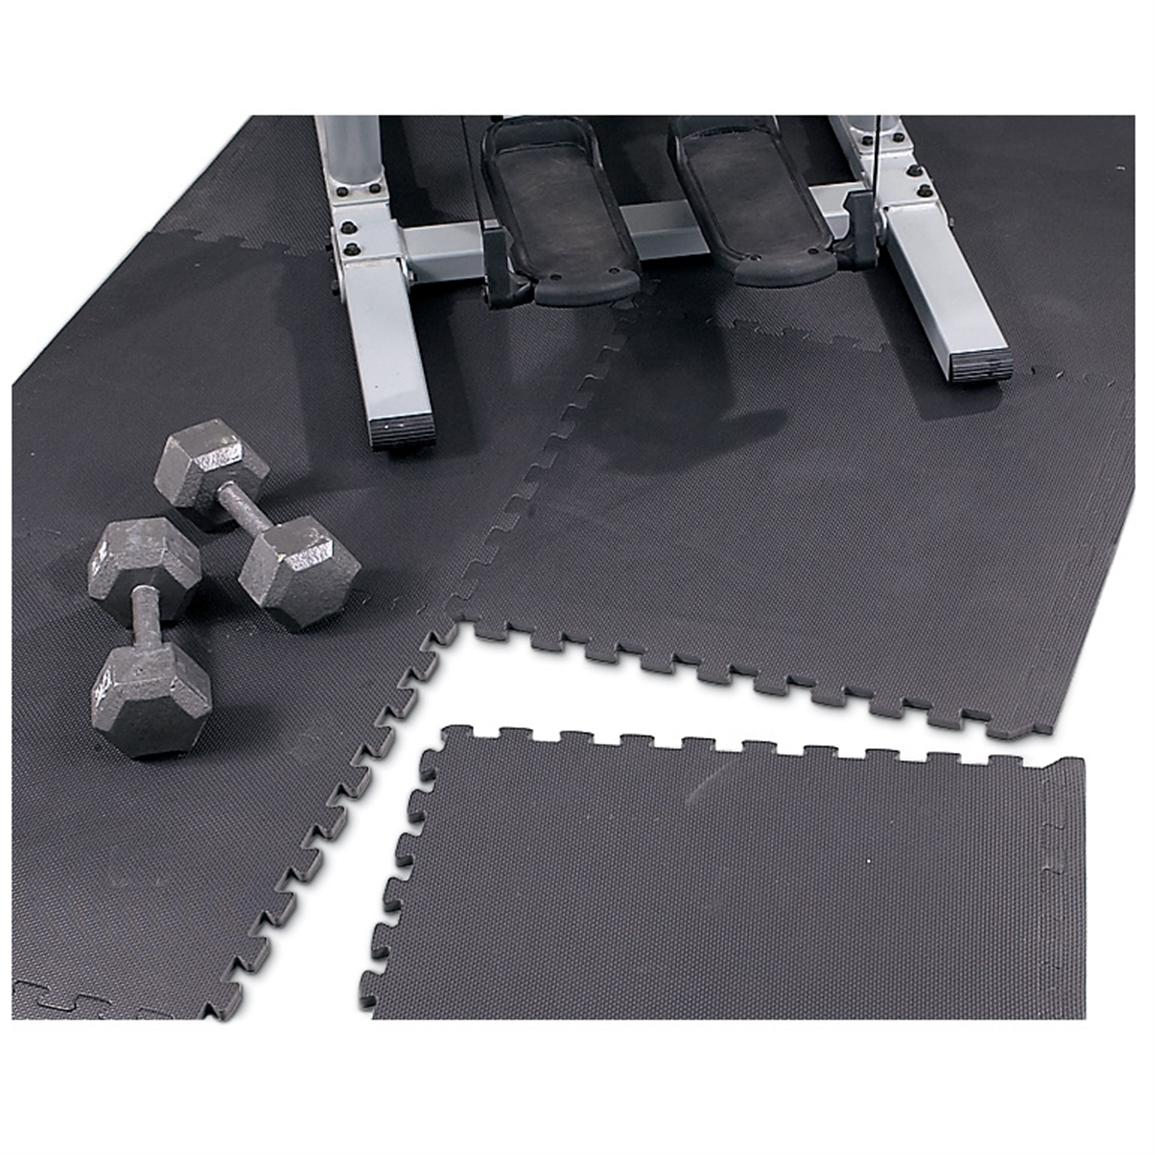 Home Exercise Equipment Crossword Clue: Puzzle Mat Floor Protector, Black